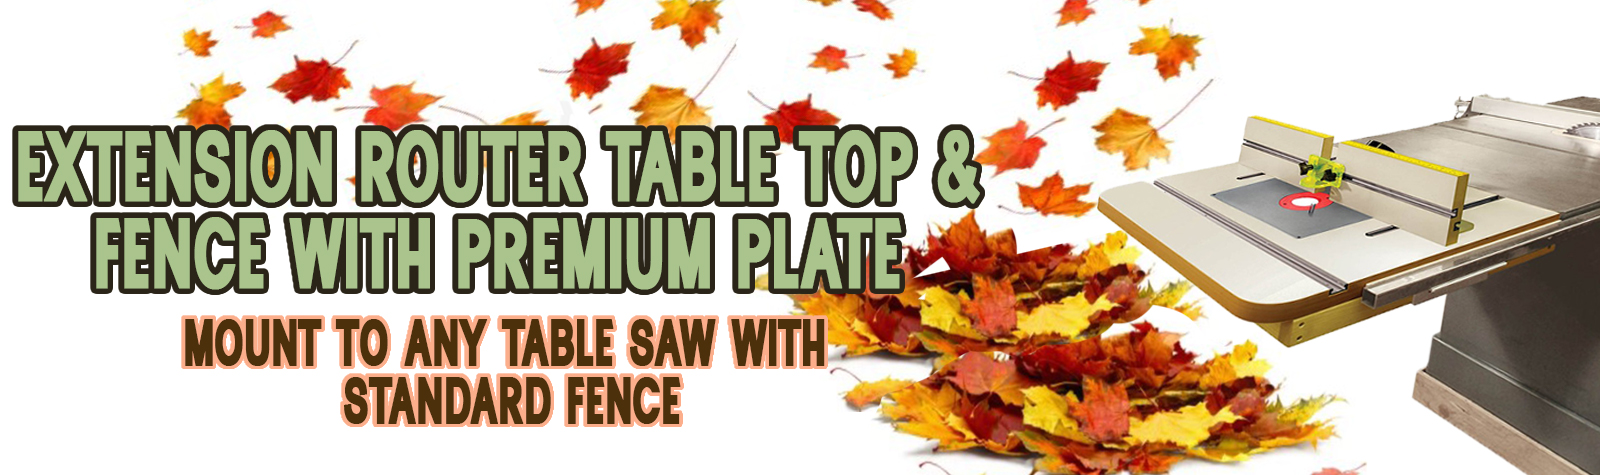 Extension Router Table Top & Fence with Premium Plate, Mount to Any Table Saw with Standard Fence